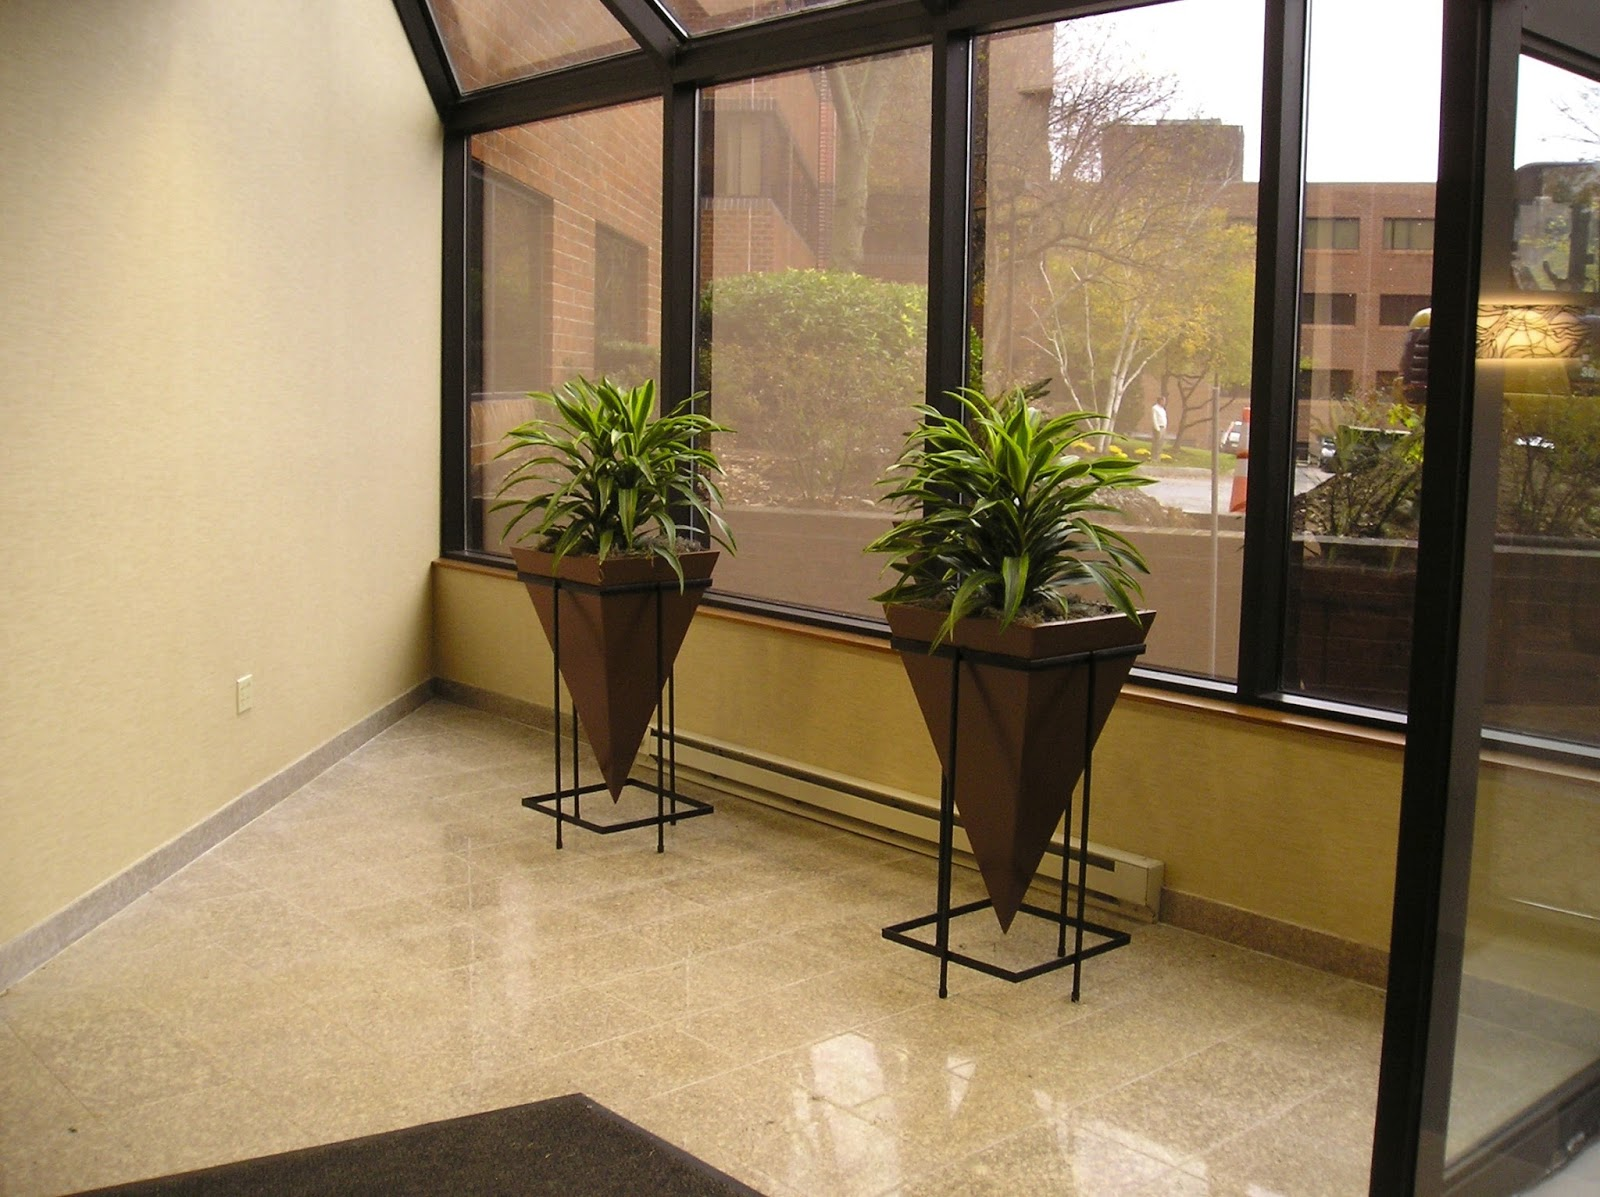 Exceptionnel Two Indoor Office Plant Cleaning The Inside Air Of Carcinogens Burlington,  MA